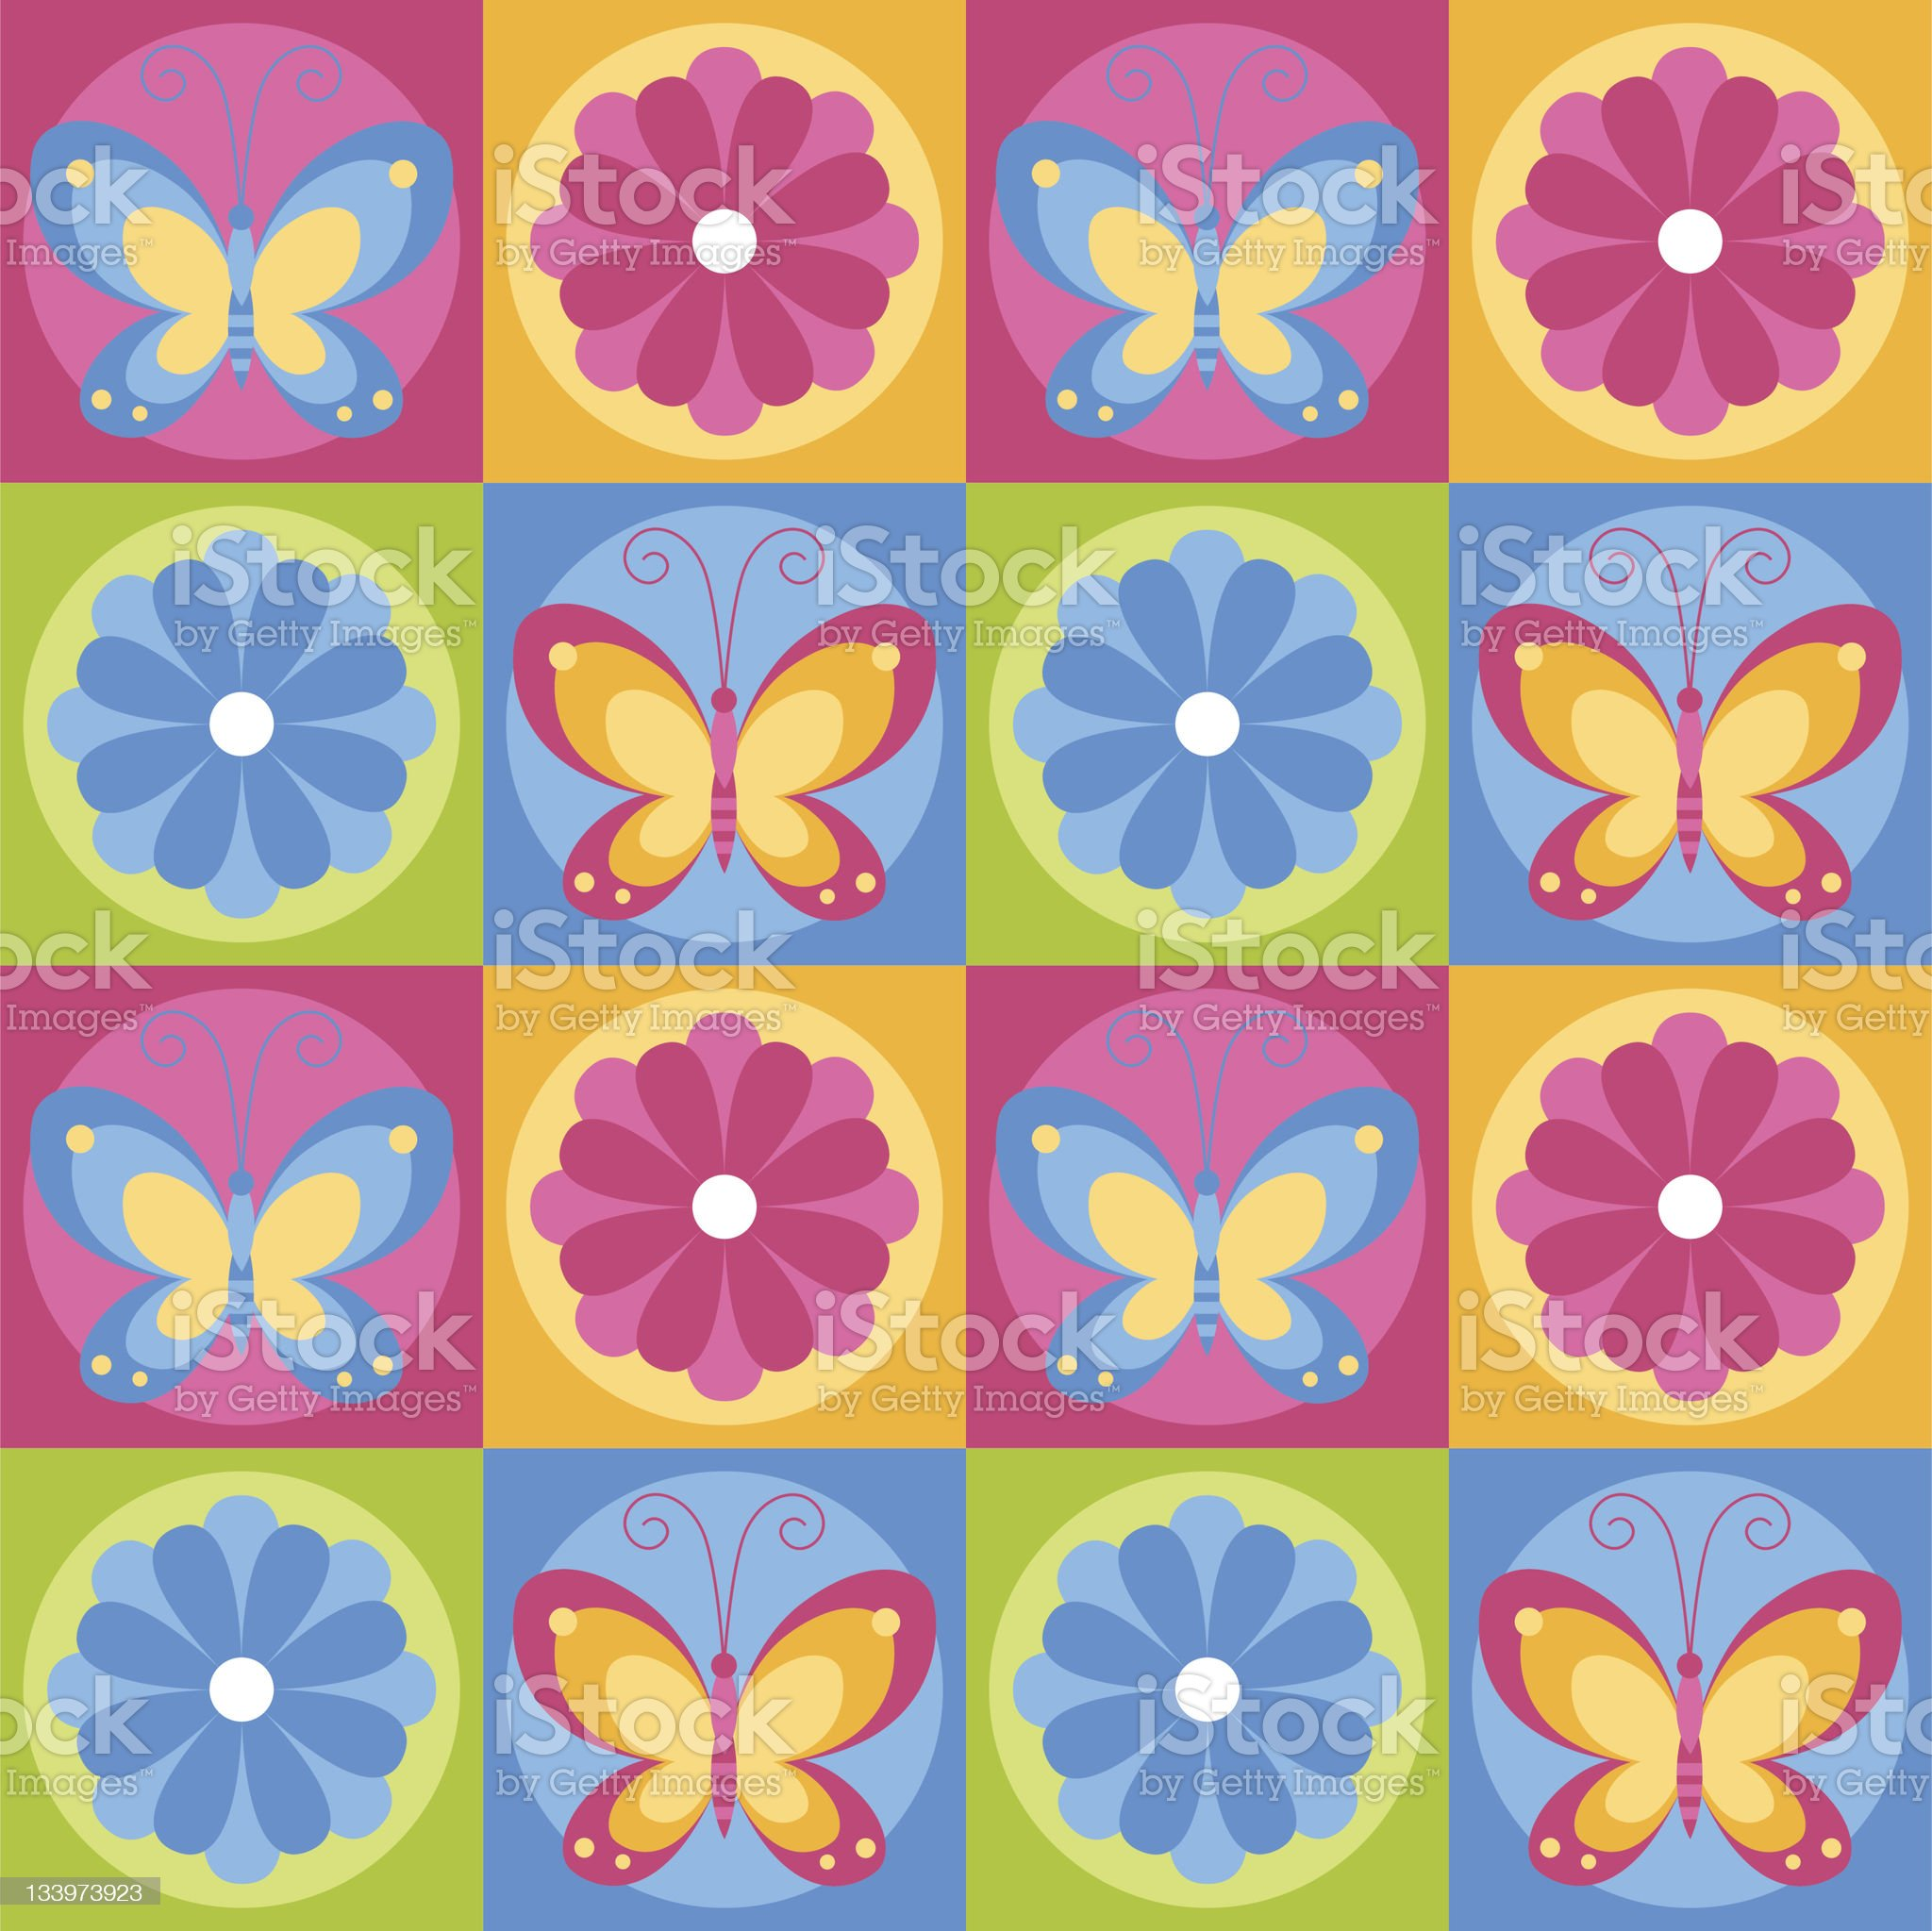 Butterflies and flowers royalty-free stock vector art